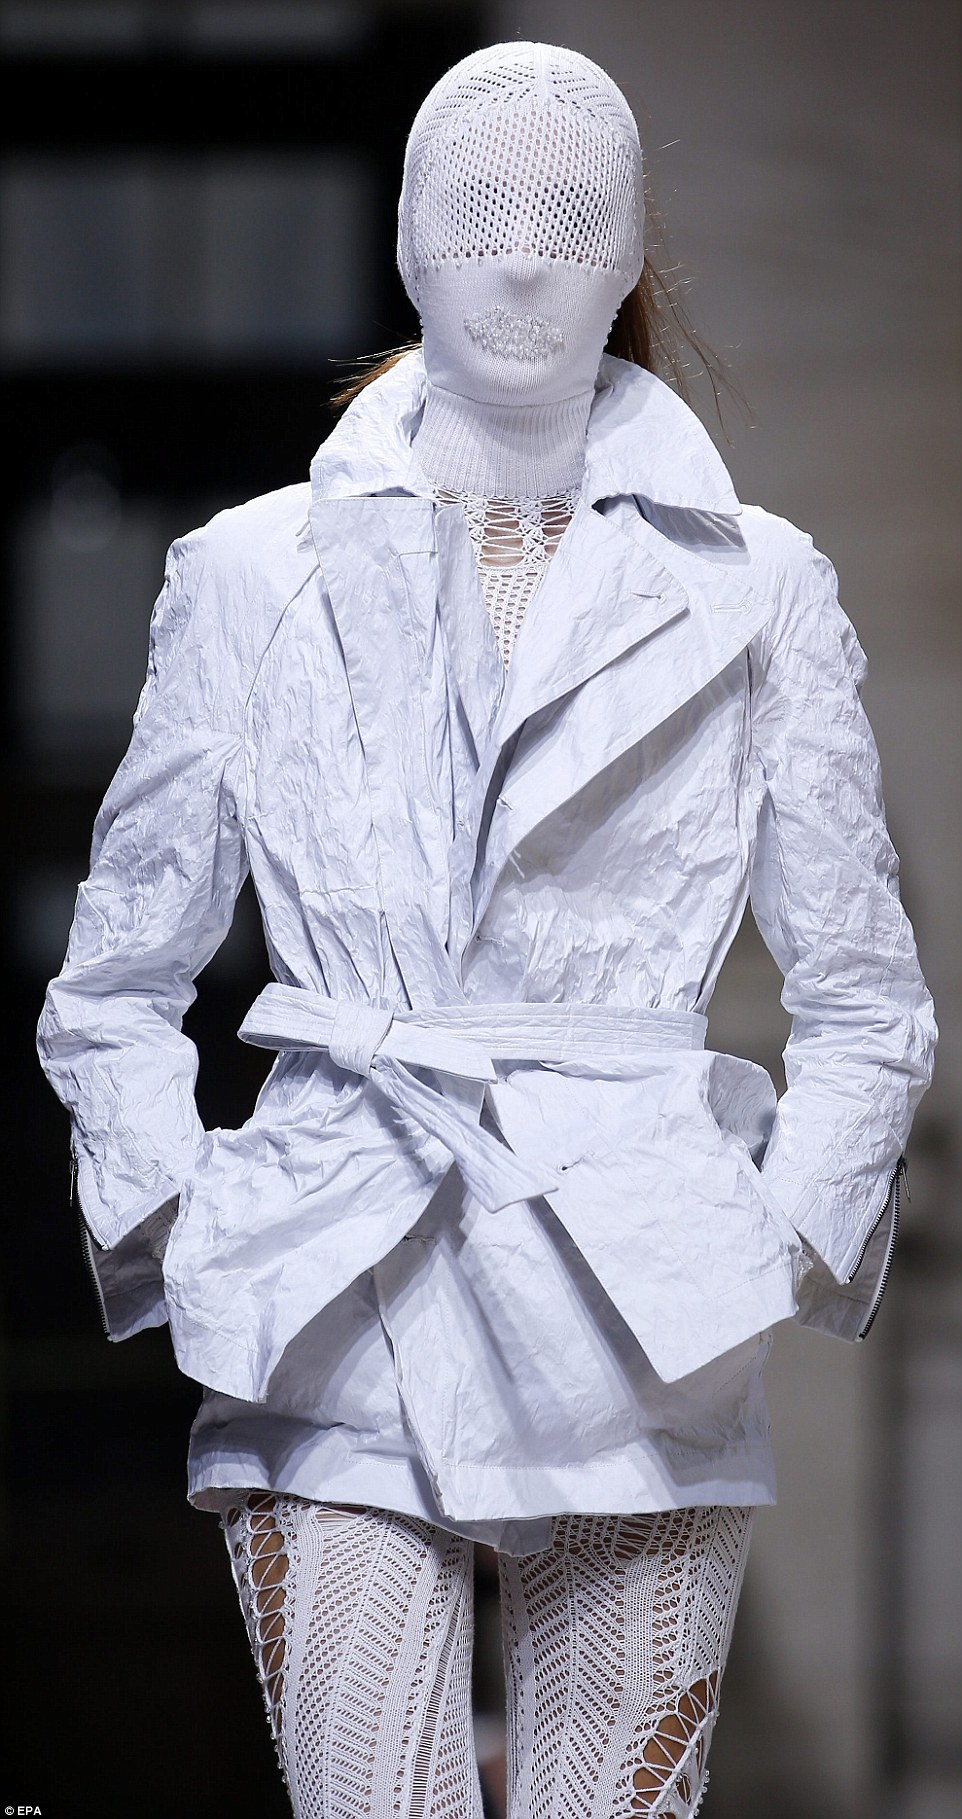 A model takes to the runway in a creased blazer-like jacket and vision-restricting mesh mask